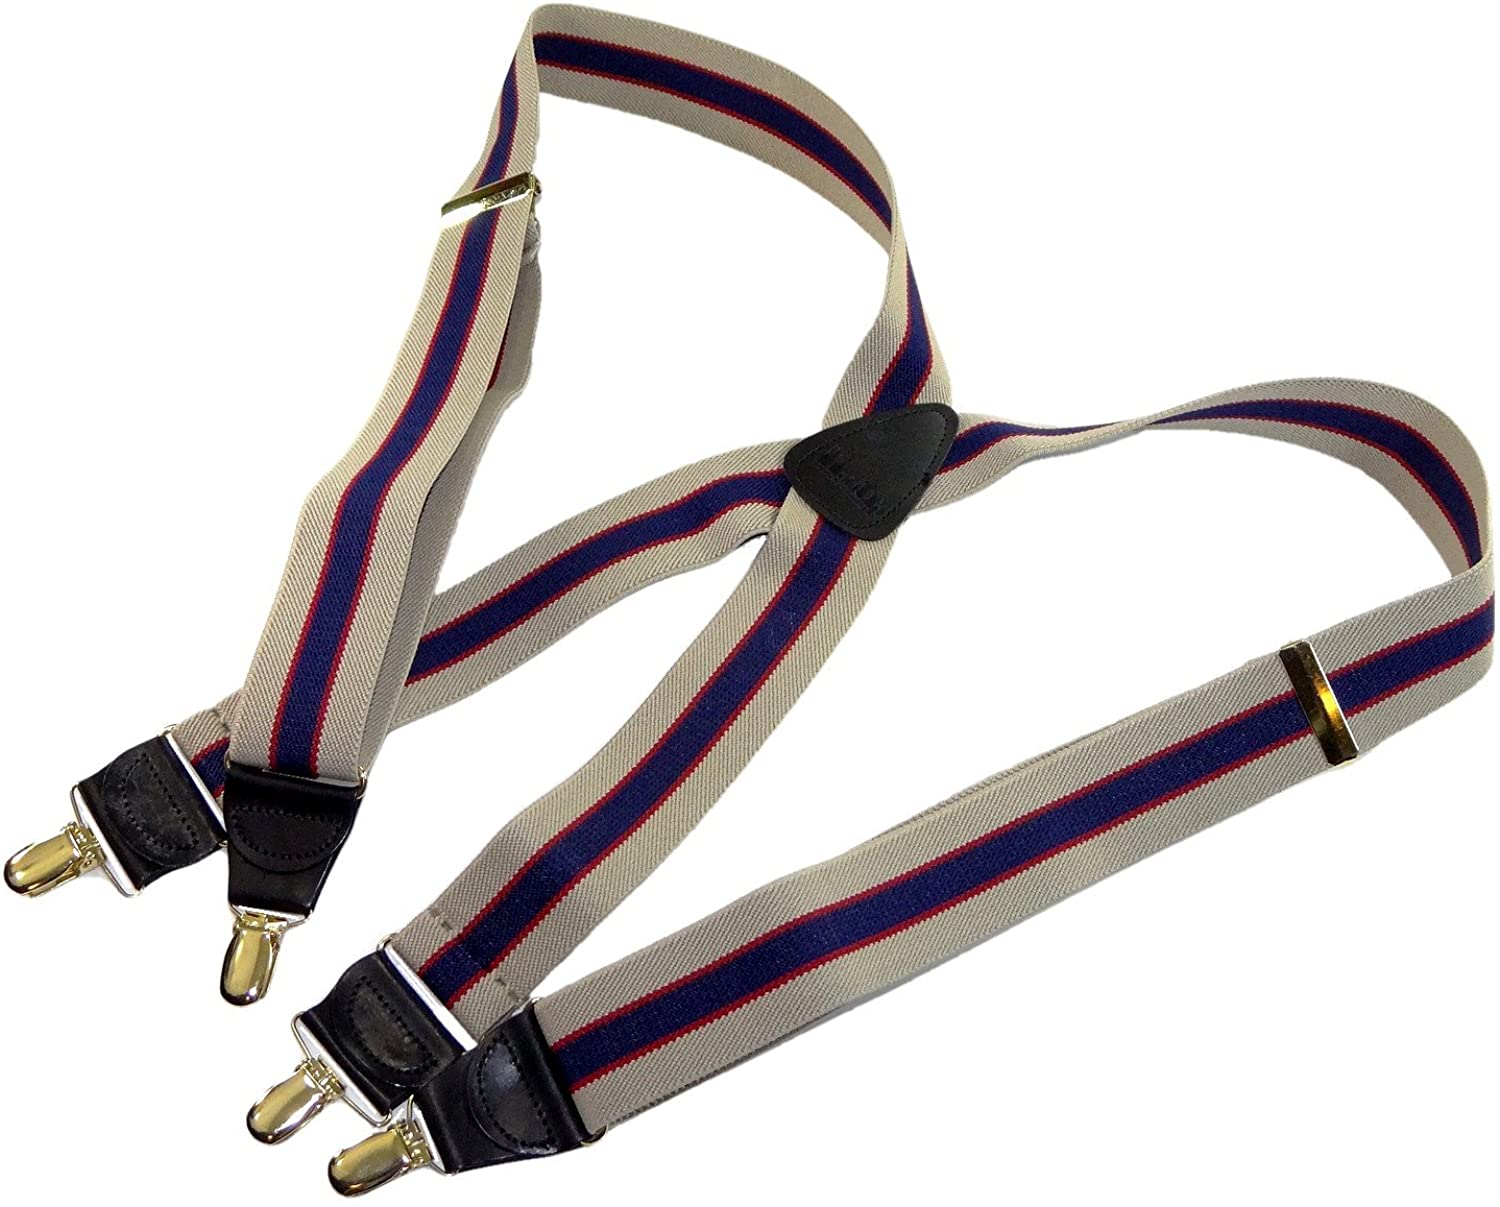 Holdup Brand Khaki Tan and Navy Striped Men's Suspenders with X-back Style and Gold Tone no-slip Patented clips